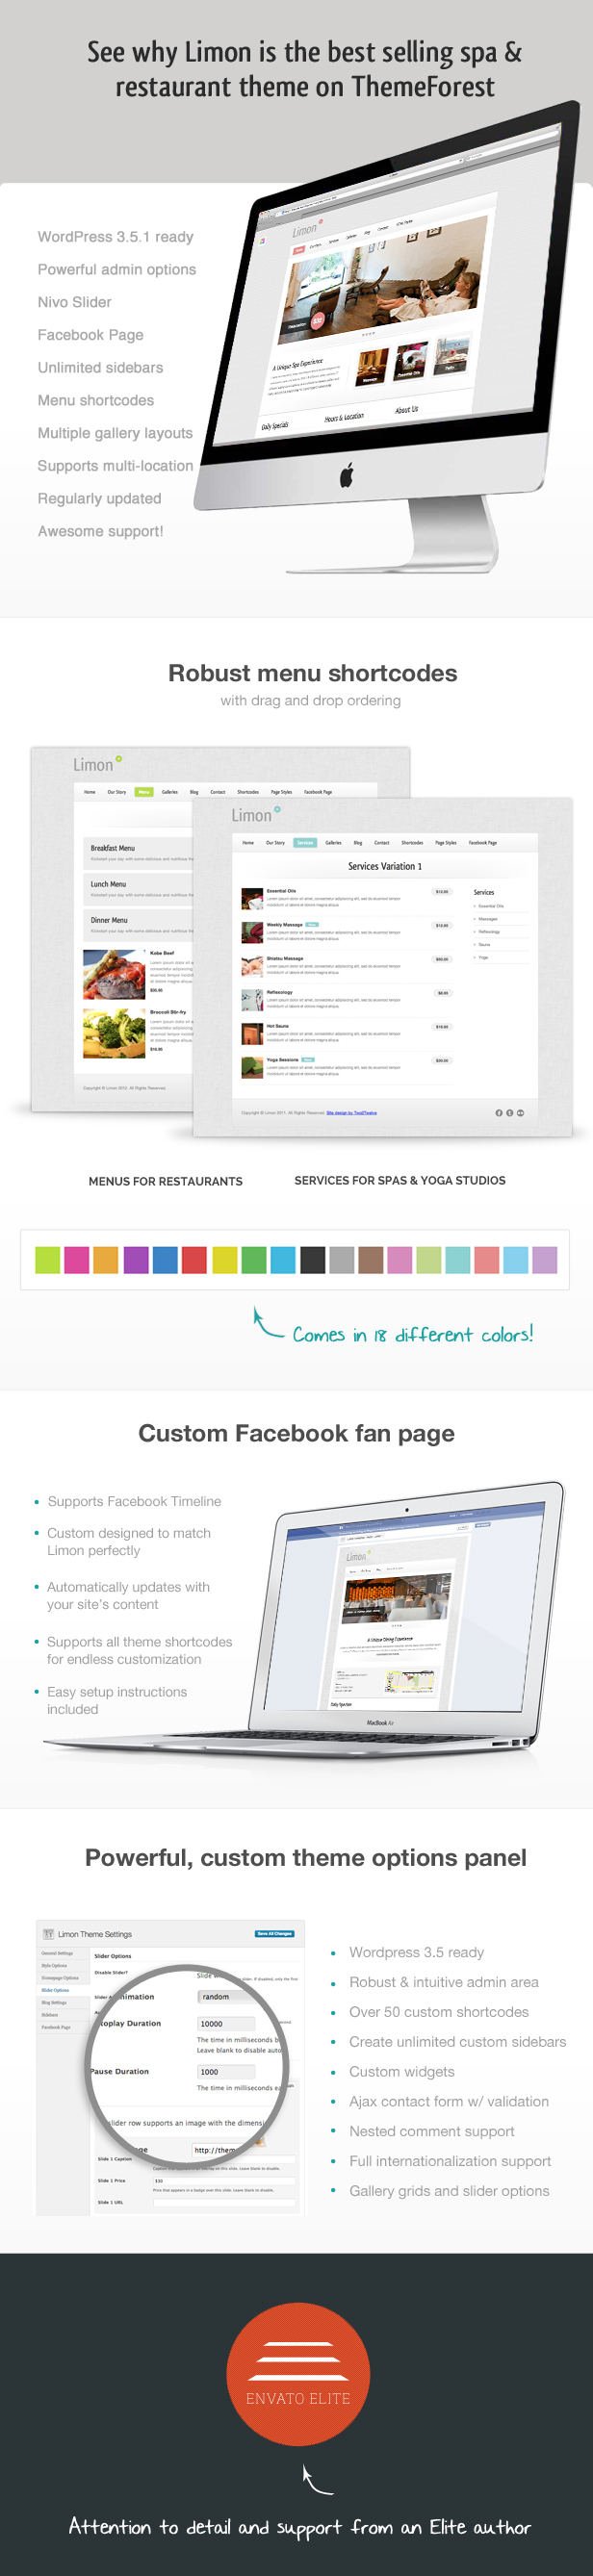 Limon - A Restaurant and Spa Wordpress Theme - 1